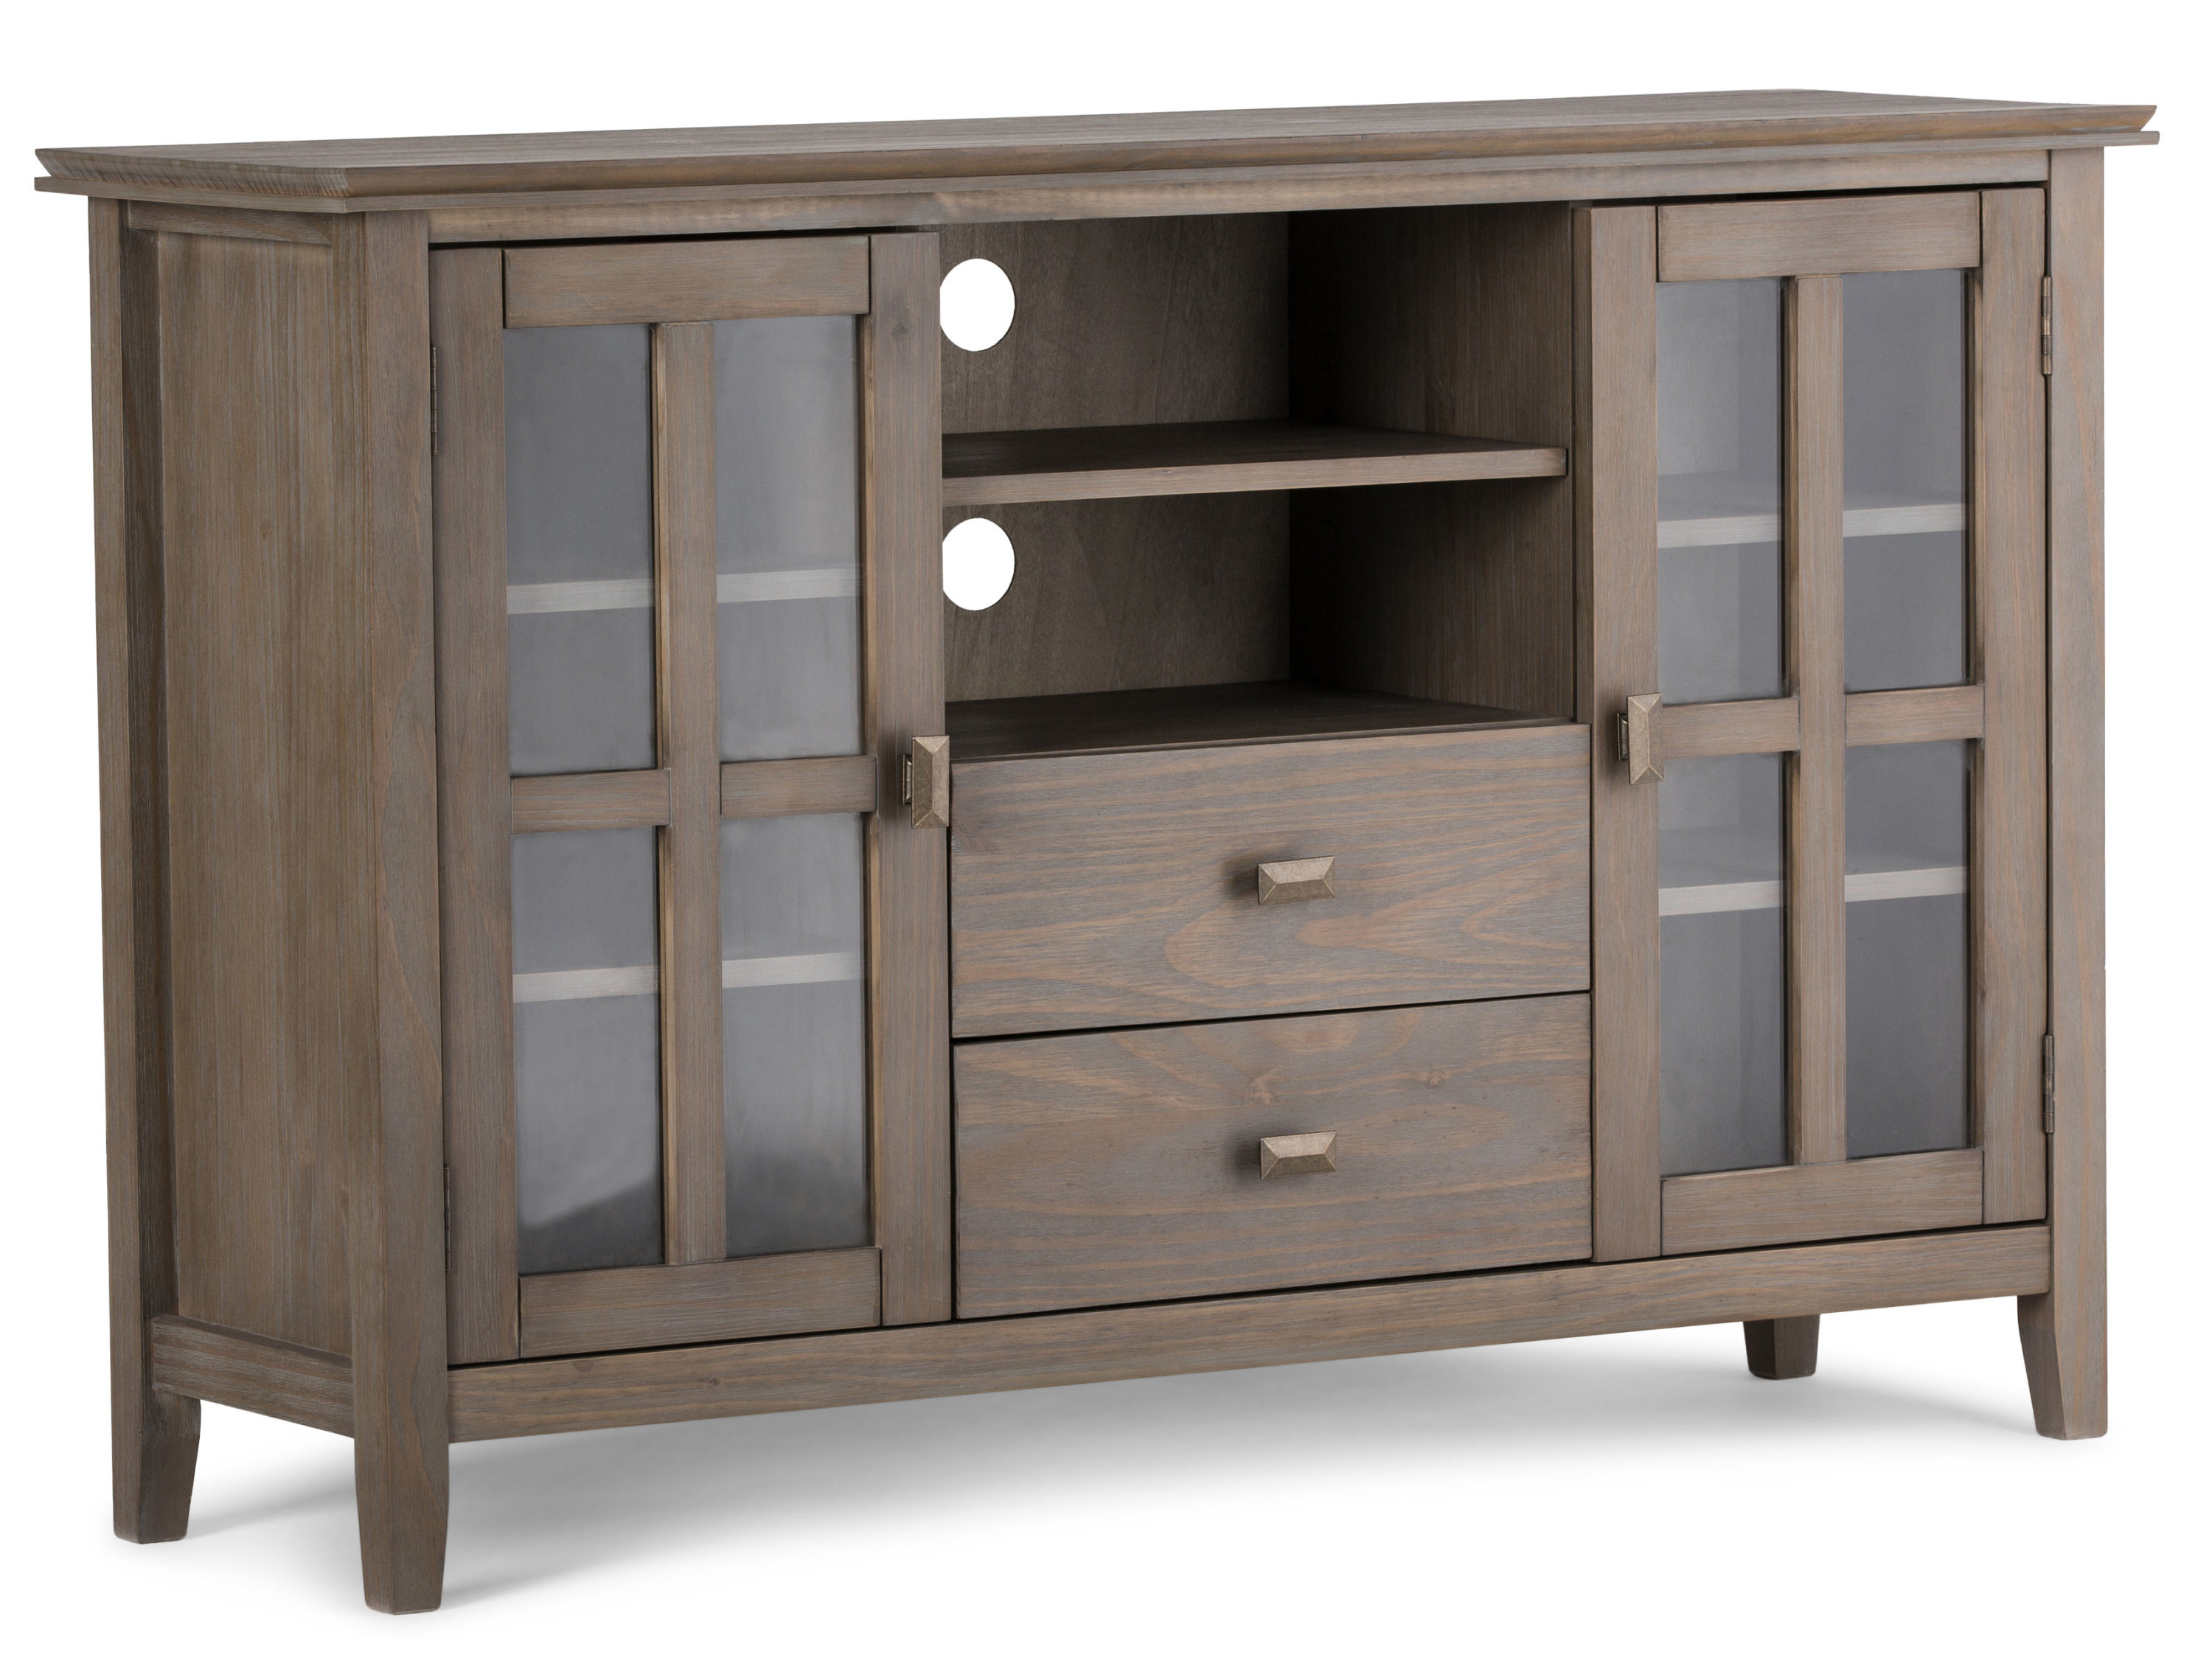 Inspiration about Gosport Tv Stand For Tvs Up To 55 Pertaining To Current Gosport Sideboards (#10 of 20)